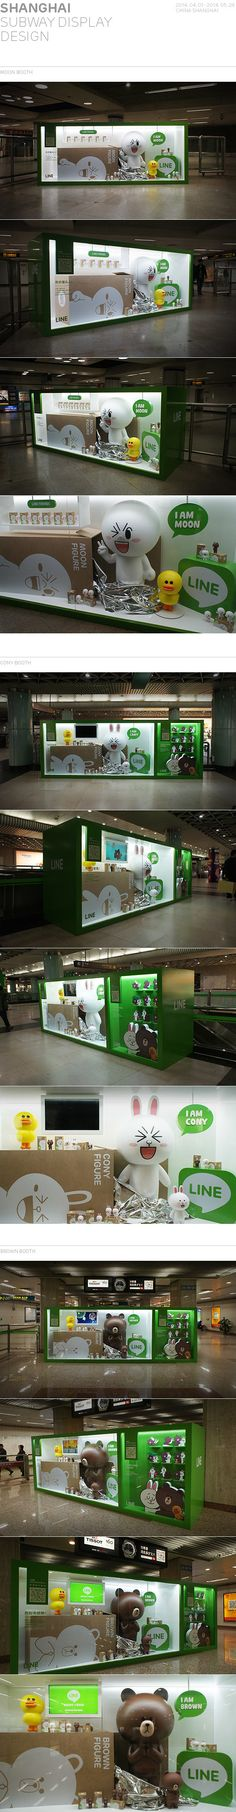 LINE Advertising in Shanghai by LINE Creative, via Behance